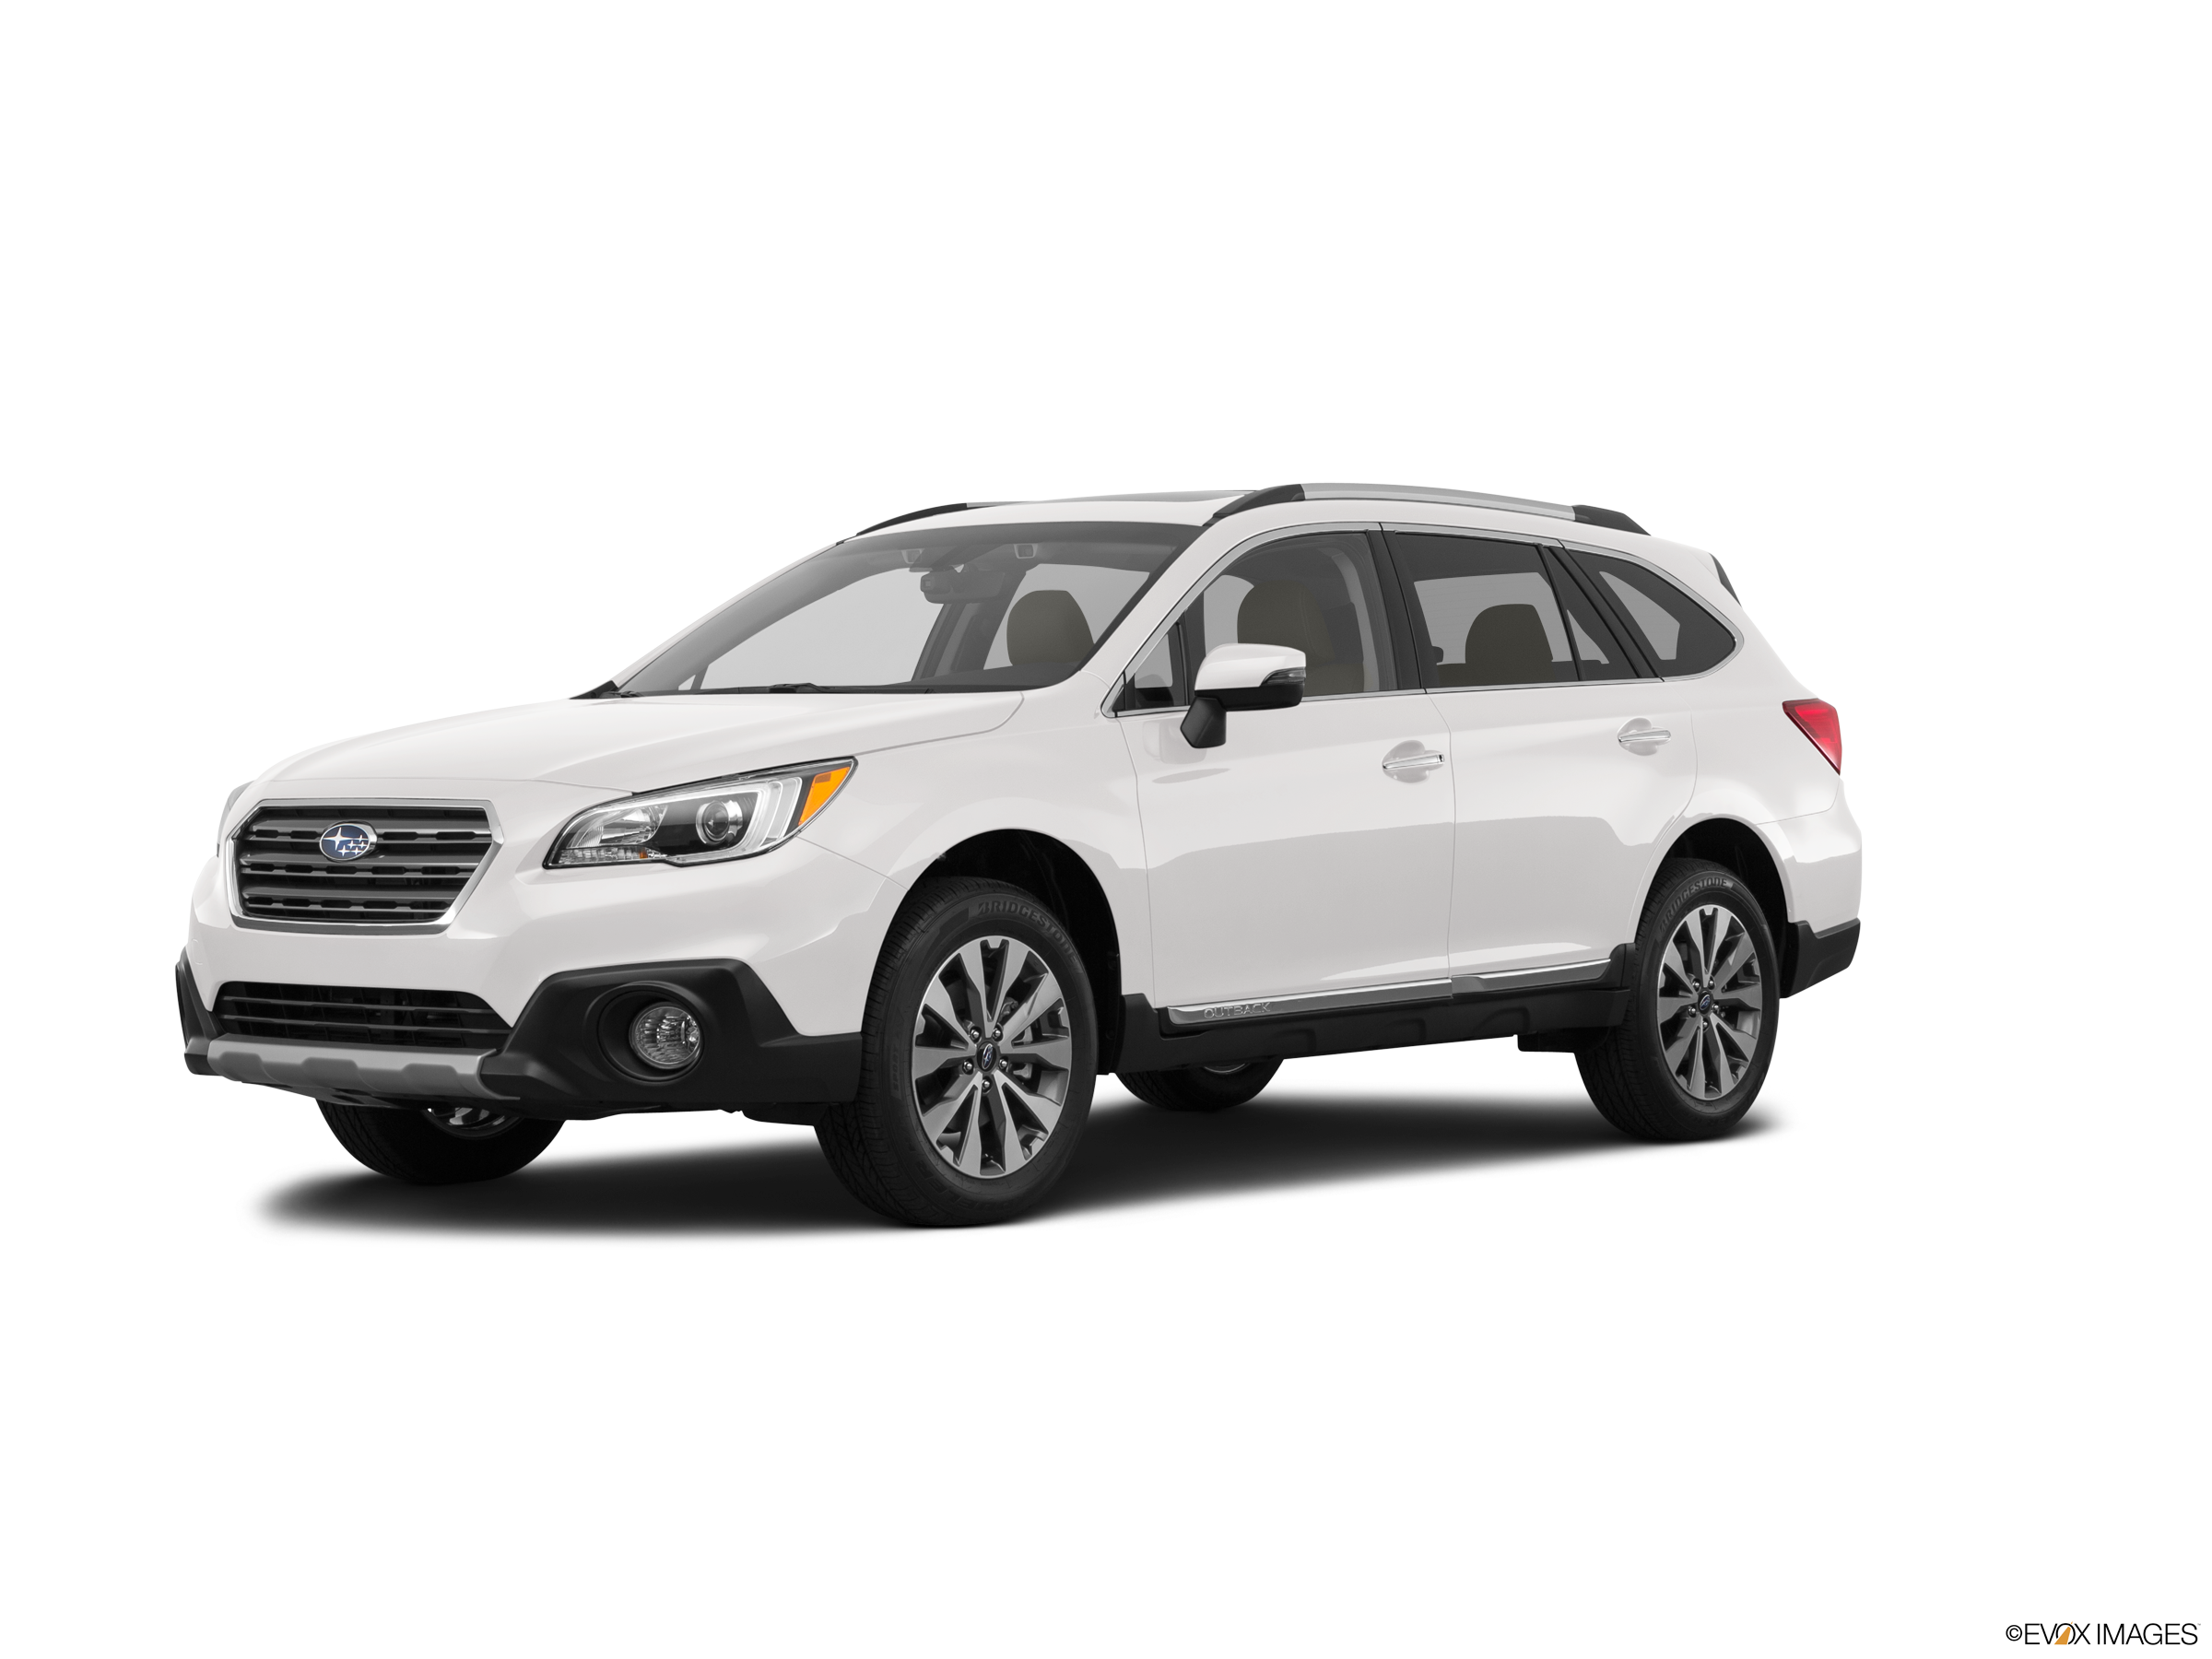 Highest Horsepower Wagons of 2017 - 2017 Subaru Outback